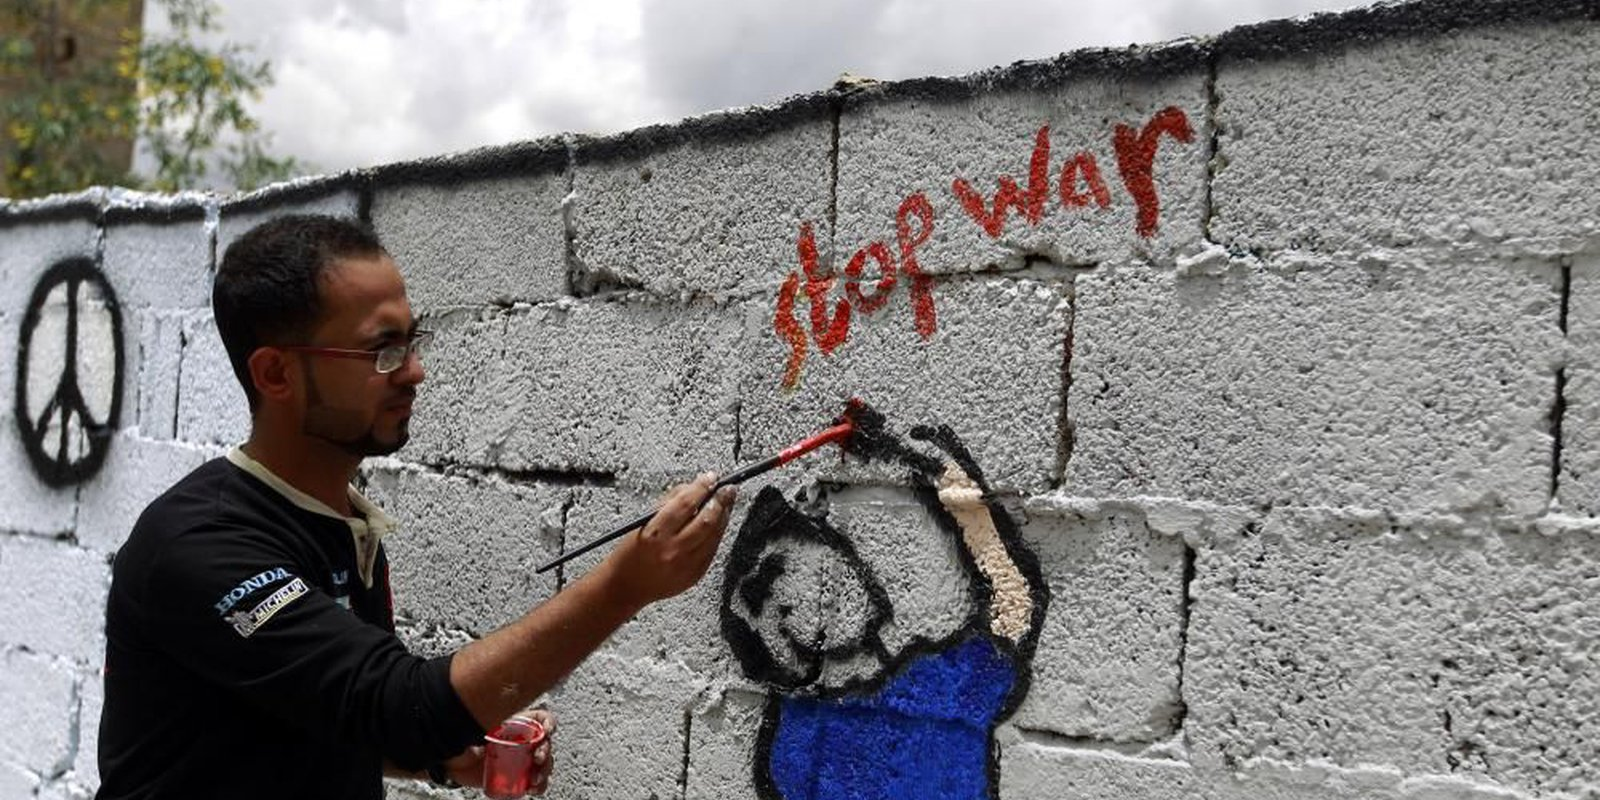 Image — A Yemeni artist painting on a wall in the capital Sanaa in support of peace. Photo by MOHAMMED HUWAIS/AFP via Getty Images.